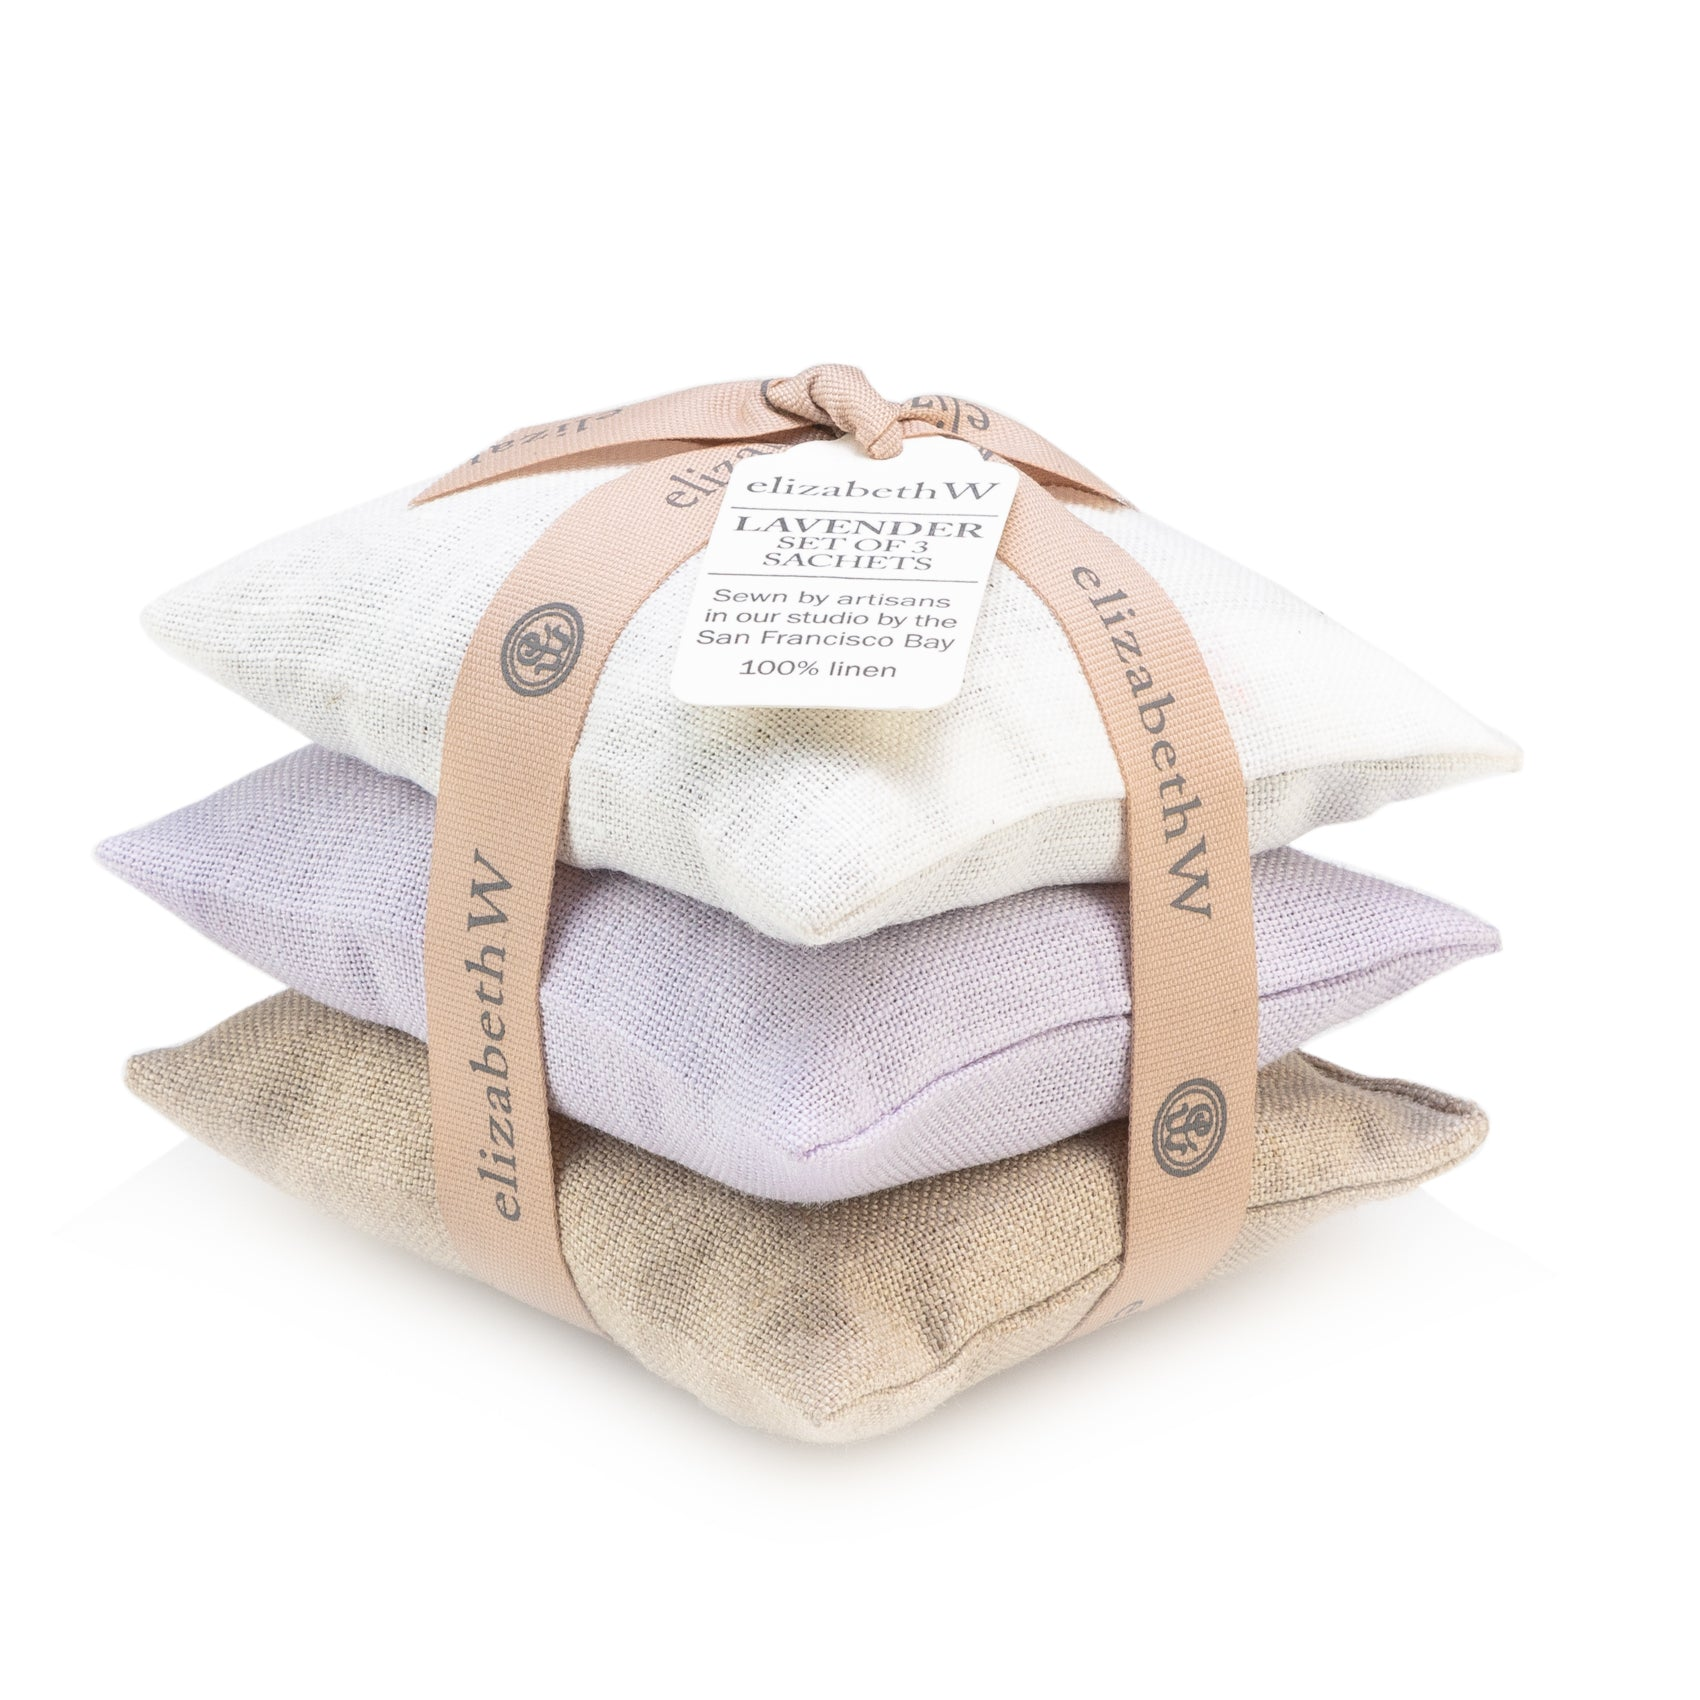 Ivory, Natural, Purple Linen Lavender Sachet Set of 3